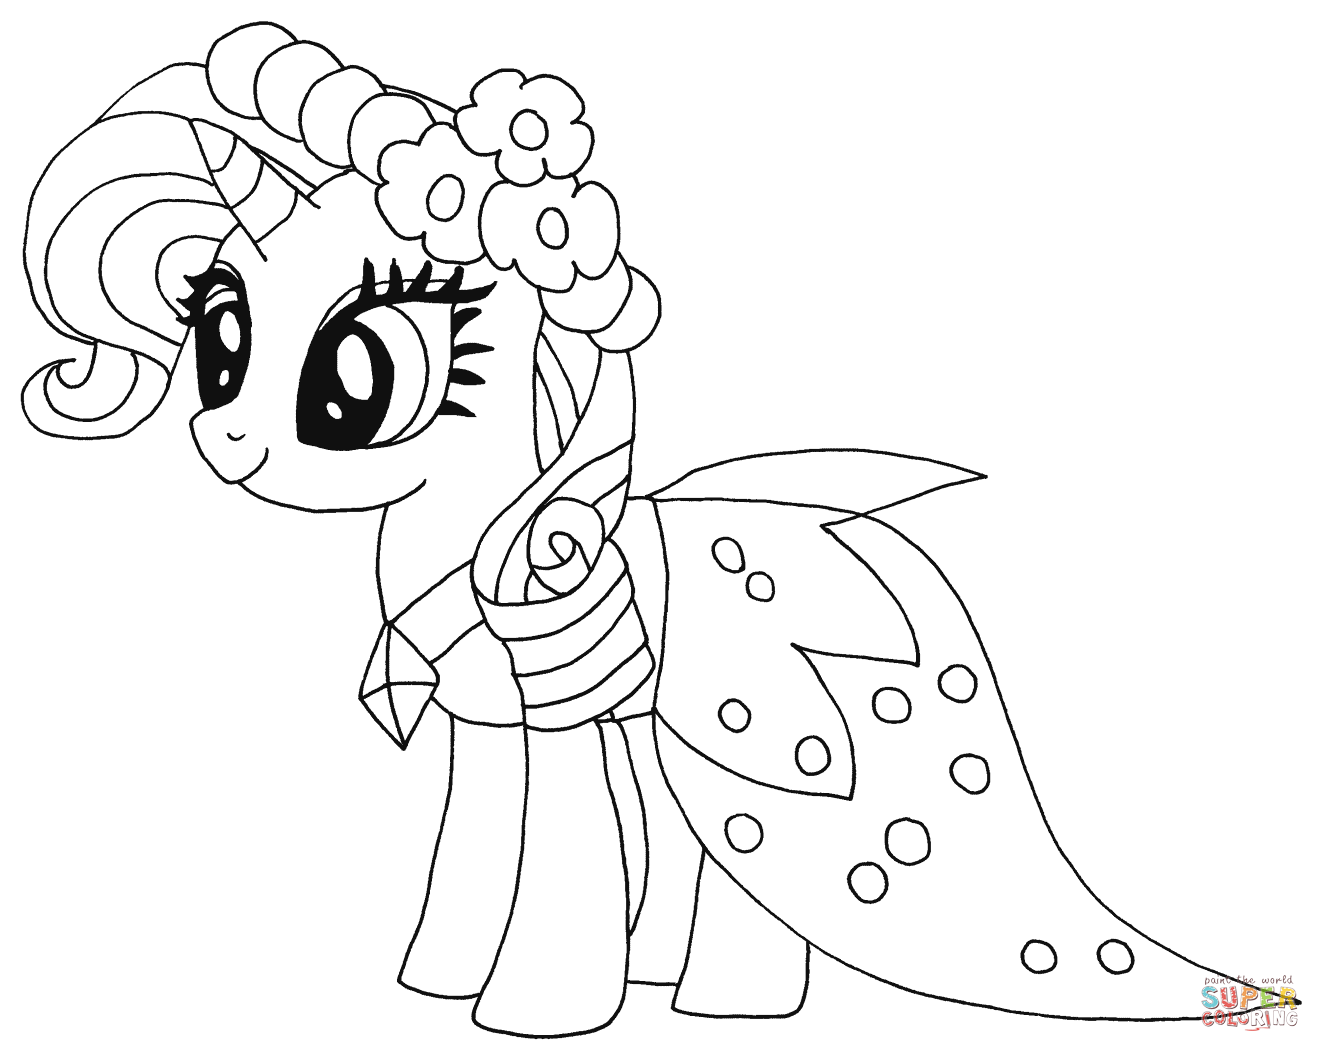 Princess Rarity from My Little Pony Coloring Page